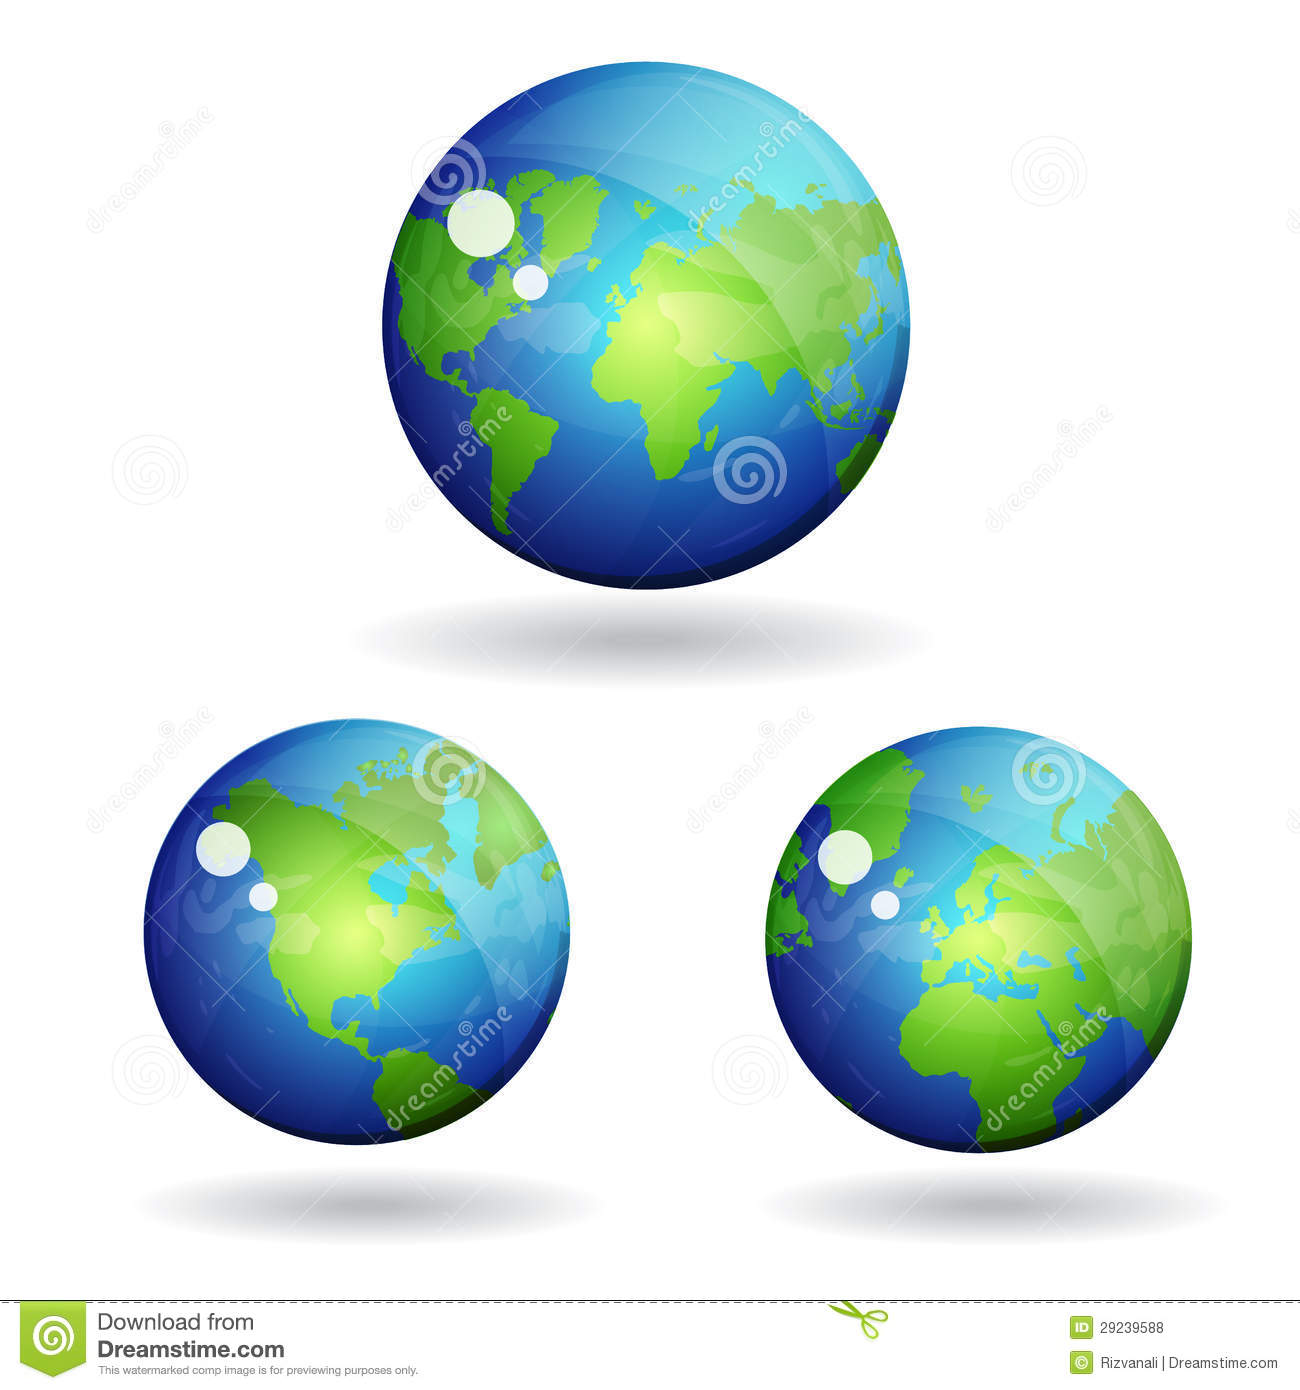 3d world globe map vector icon stock vector illustration of 3d world globe map vector icon europe company royalty free stock photo gumiabroncs Gallery